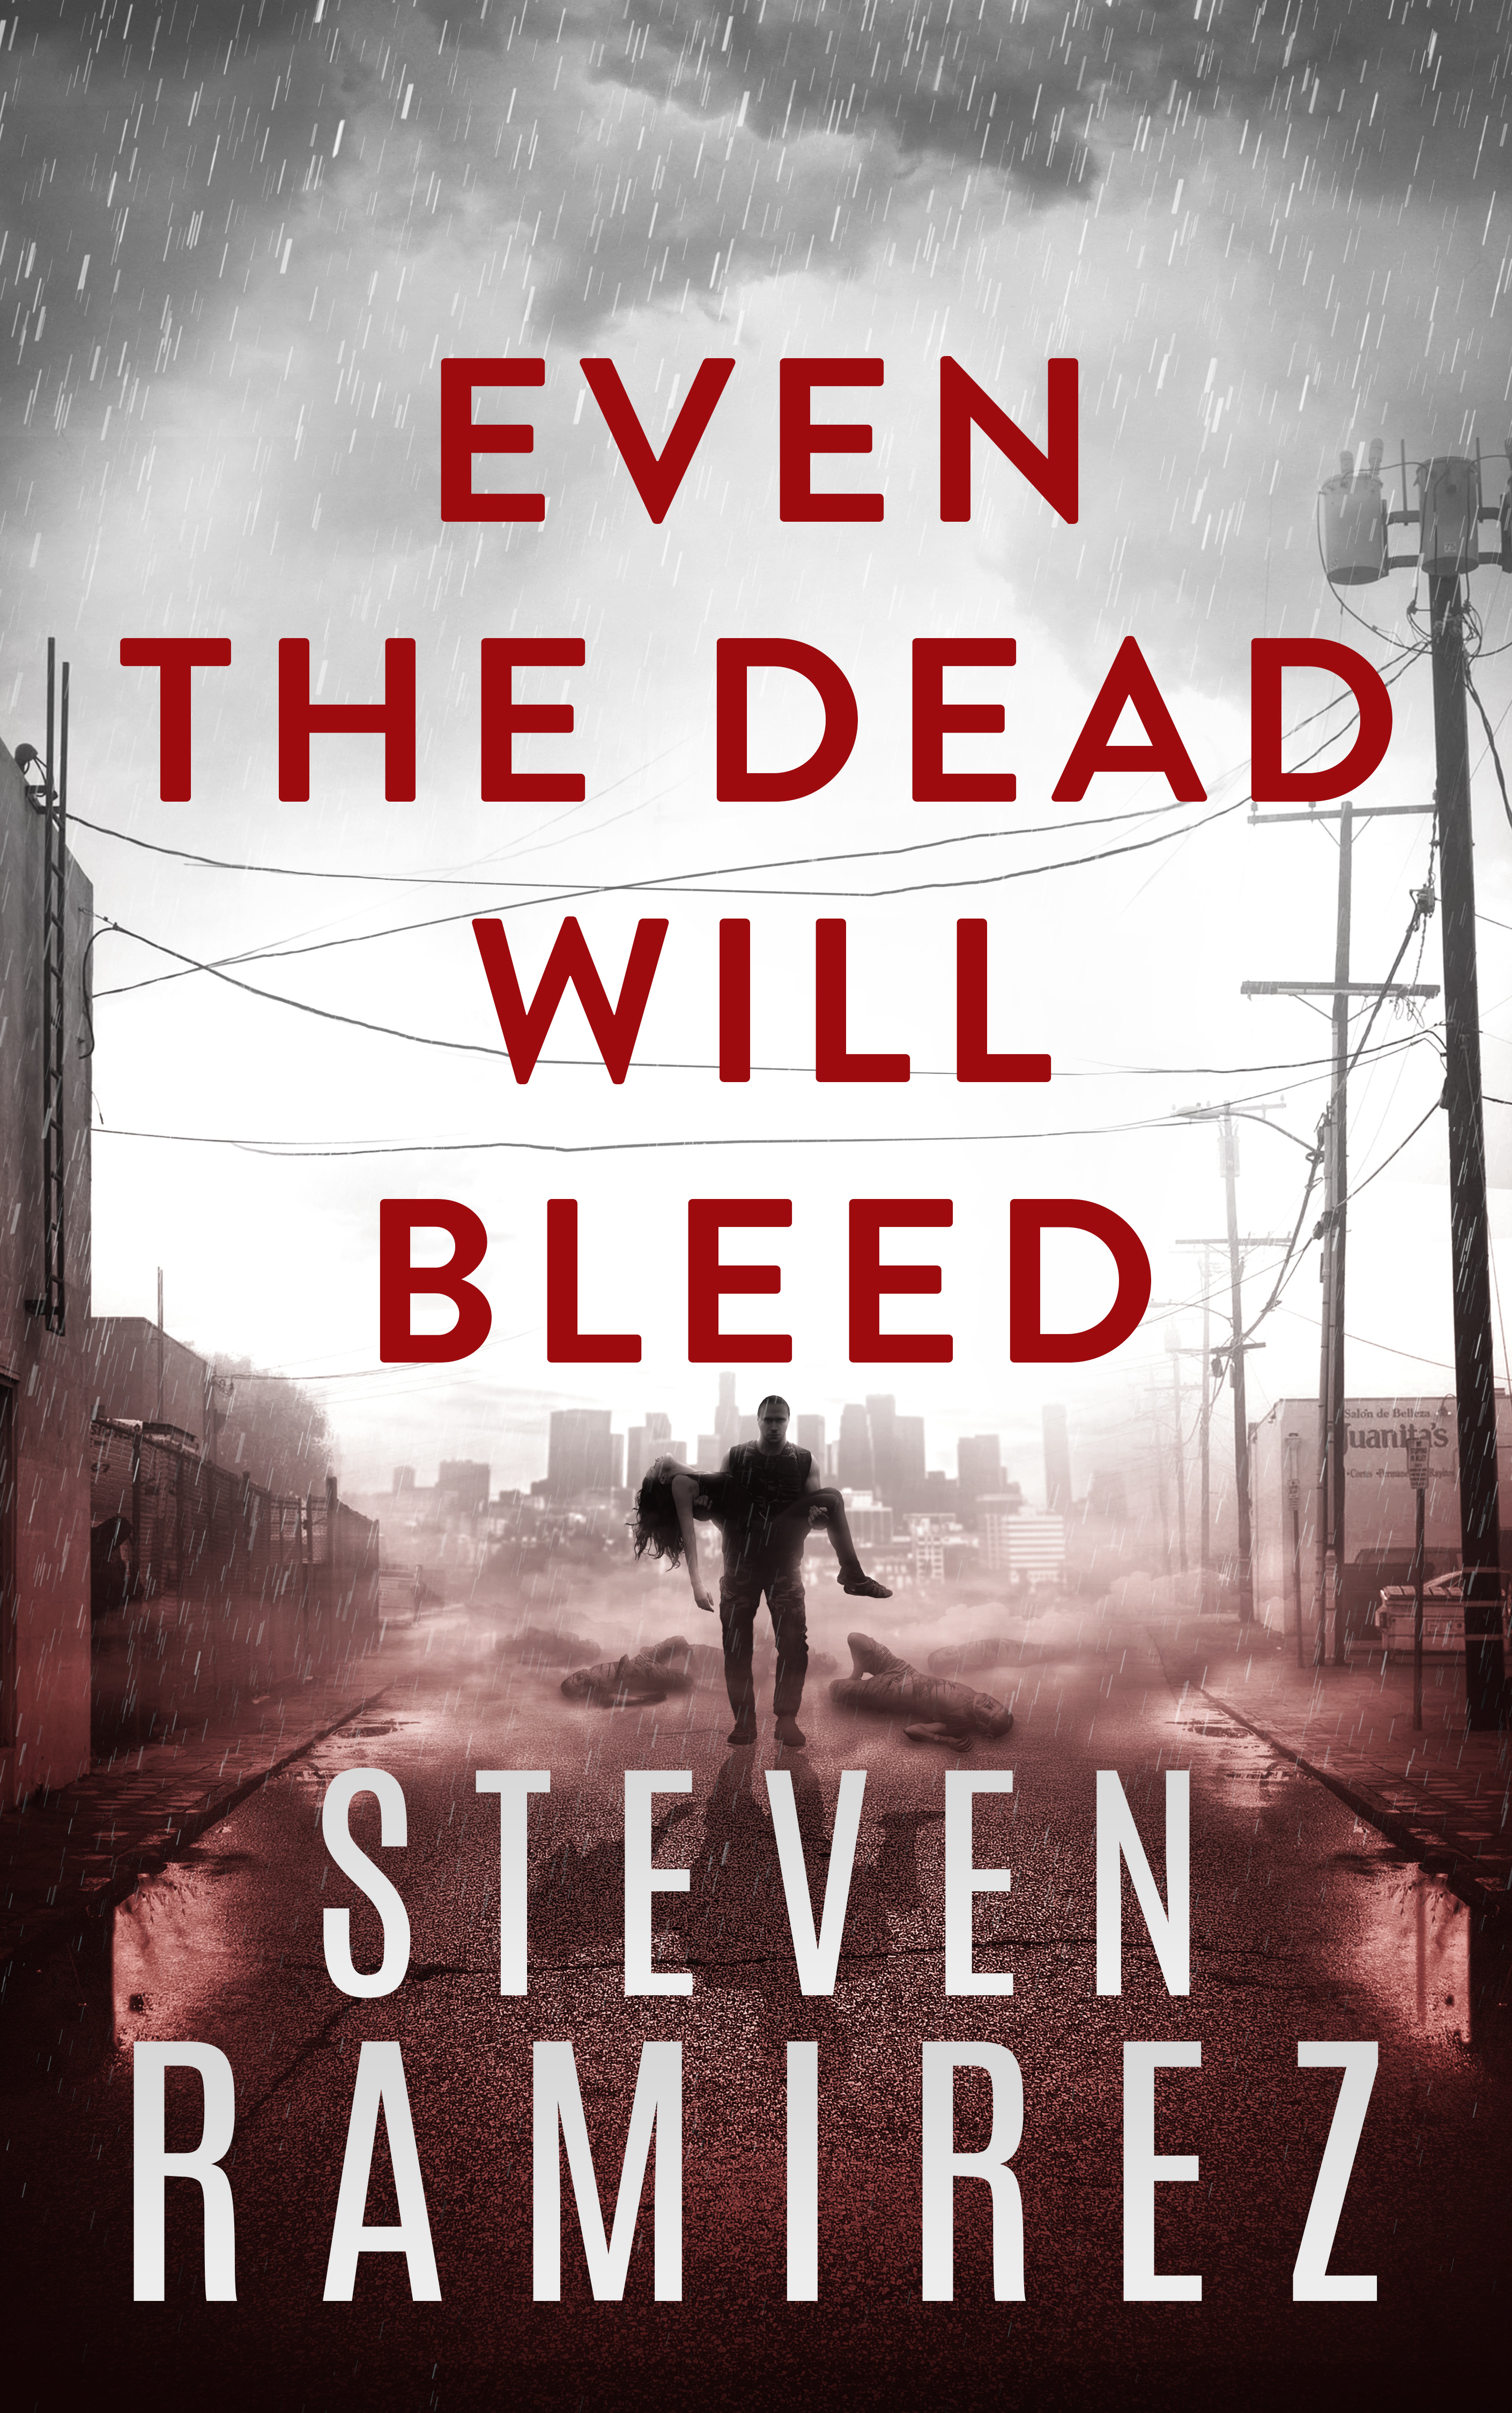 [Even The Dead Will Bleed]